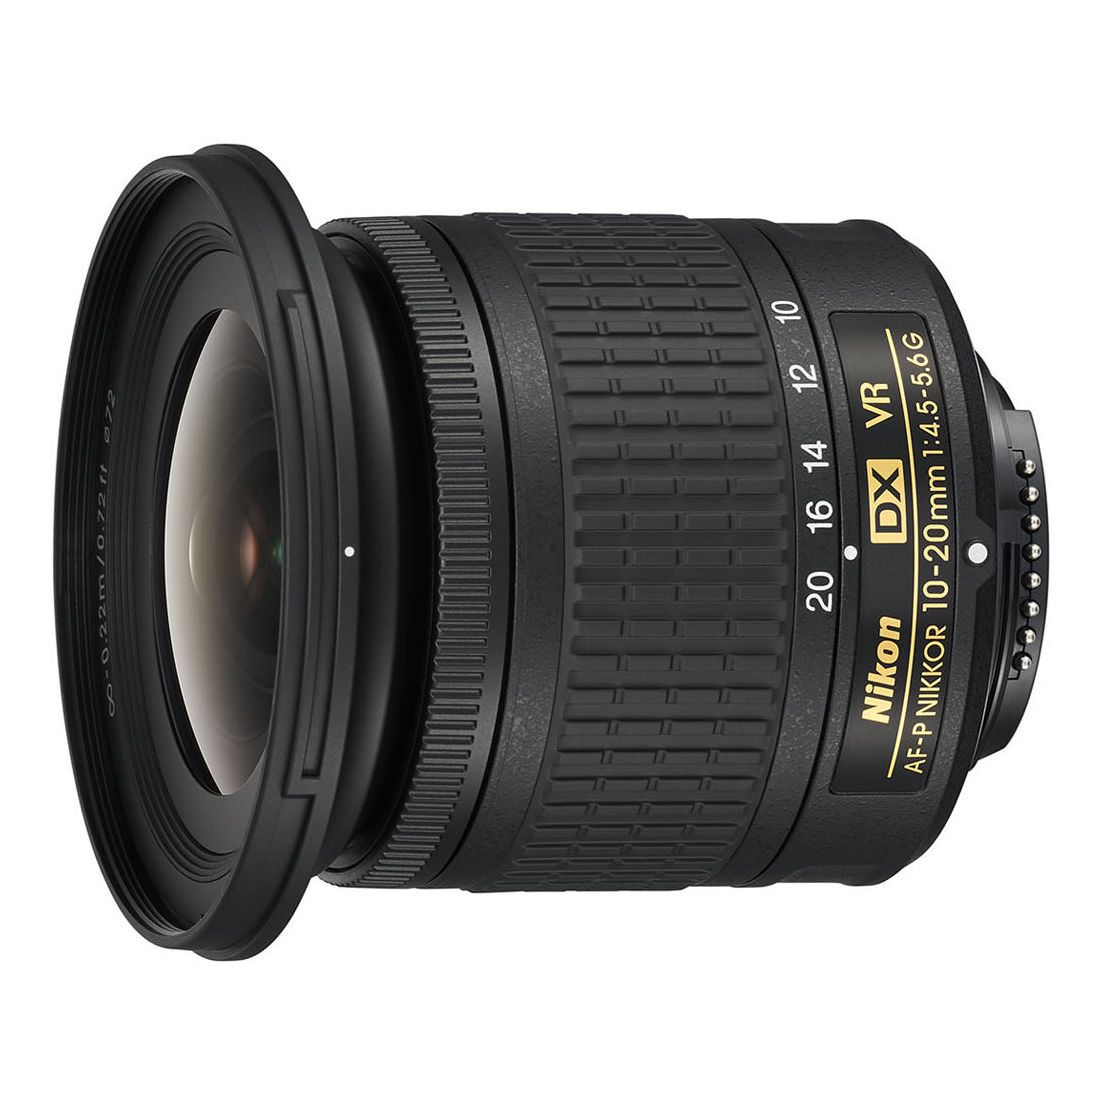 nikon 10 20mm f 4 5 5 6 dx vr af p review photography life rh photographylife com Nikon D7000 Manual Printable Nikon D7000 Manual Mode